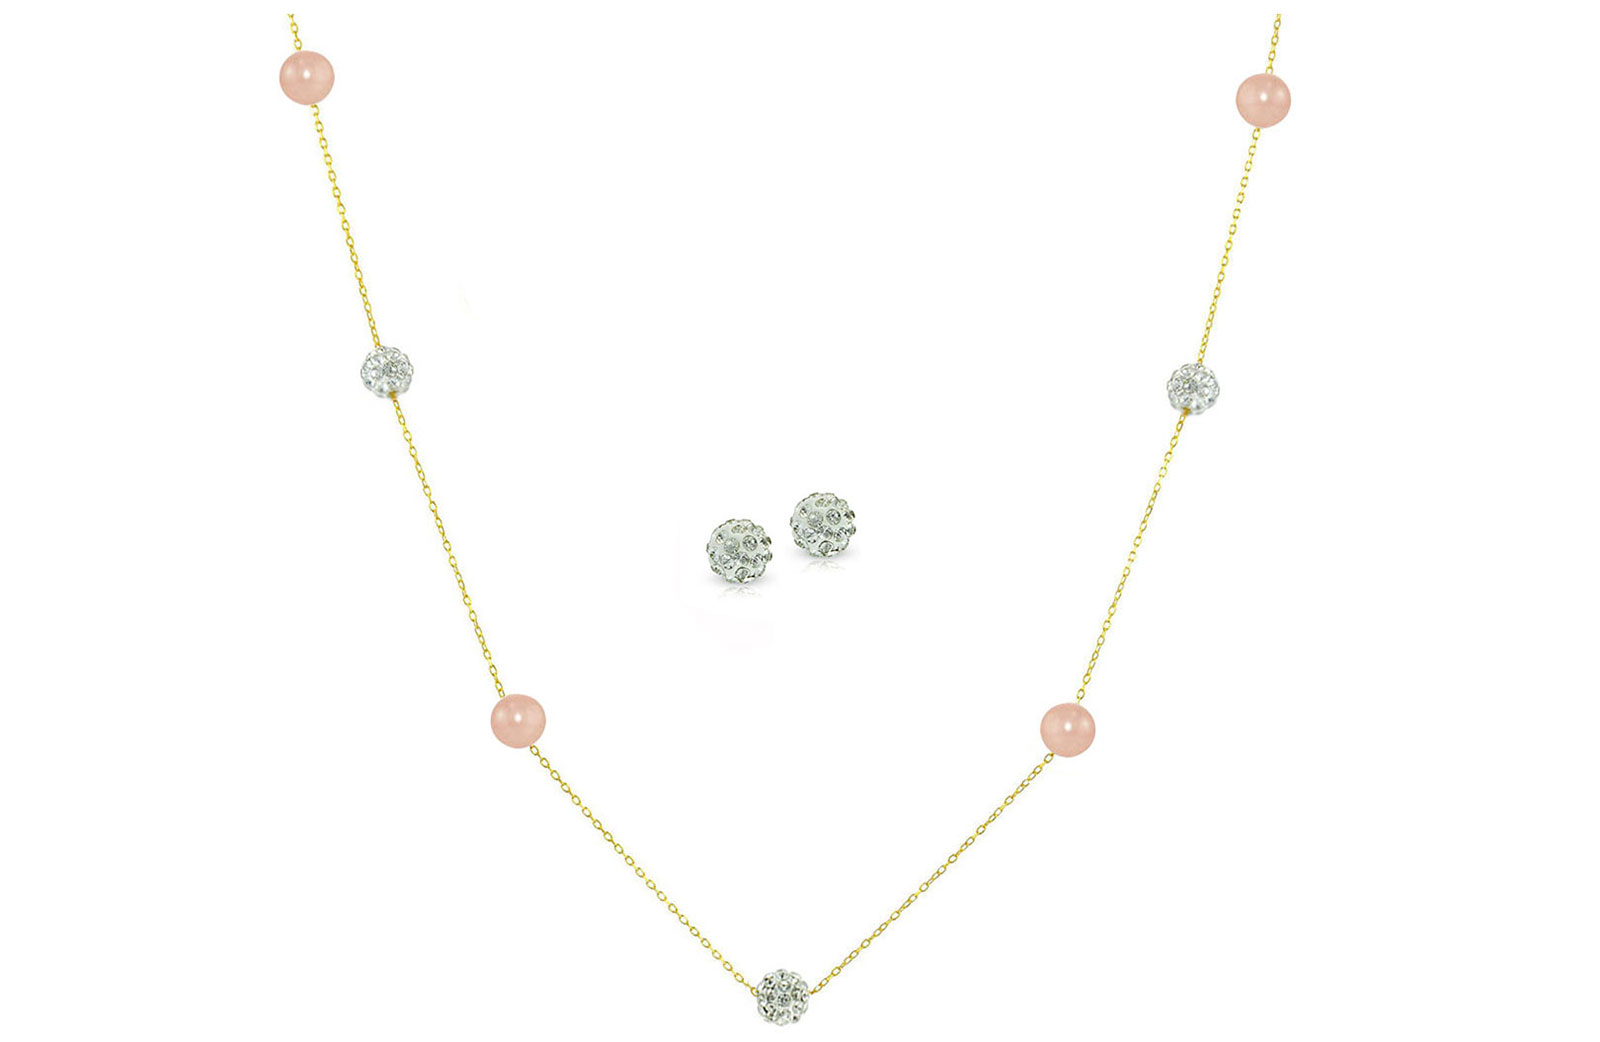 Vera Perla 18K Solid Gold Gradual Built-in 5-6mm Crystal Ball and Pink Pearls Jewelry Set - 2 pcs.